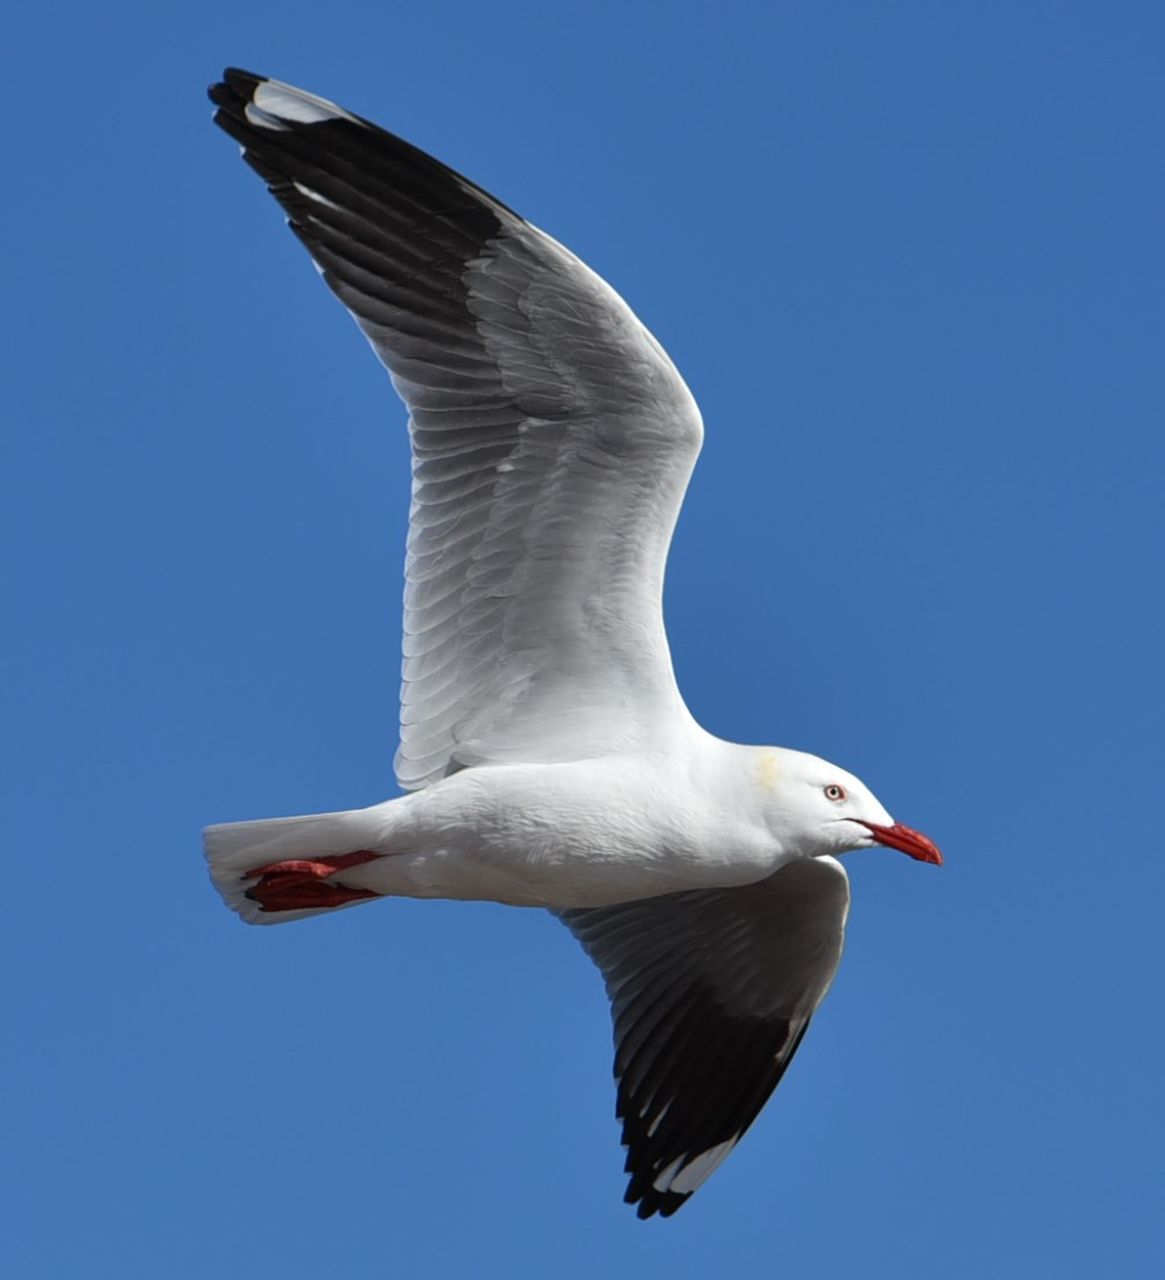 bird, spread wings, flying, one animal, animals in the wild, animal themes, animal wildlife, mid-air, white color, day, seagull, nature, full length, outdoors, no people, beak, clear sky, sky, close-up